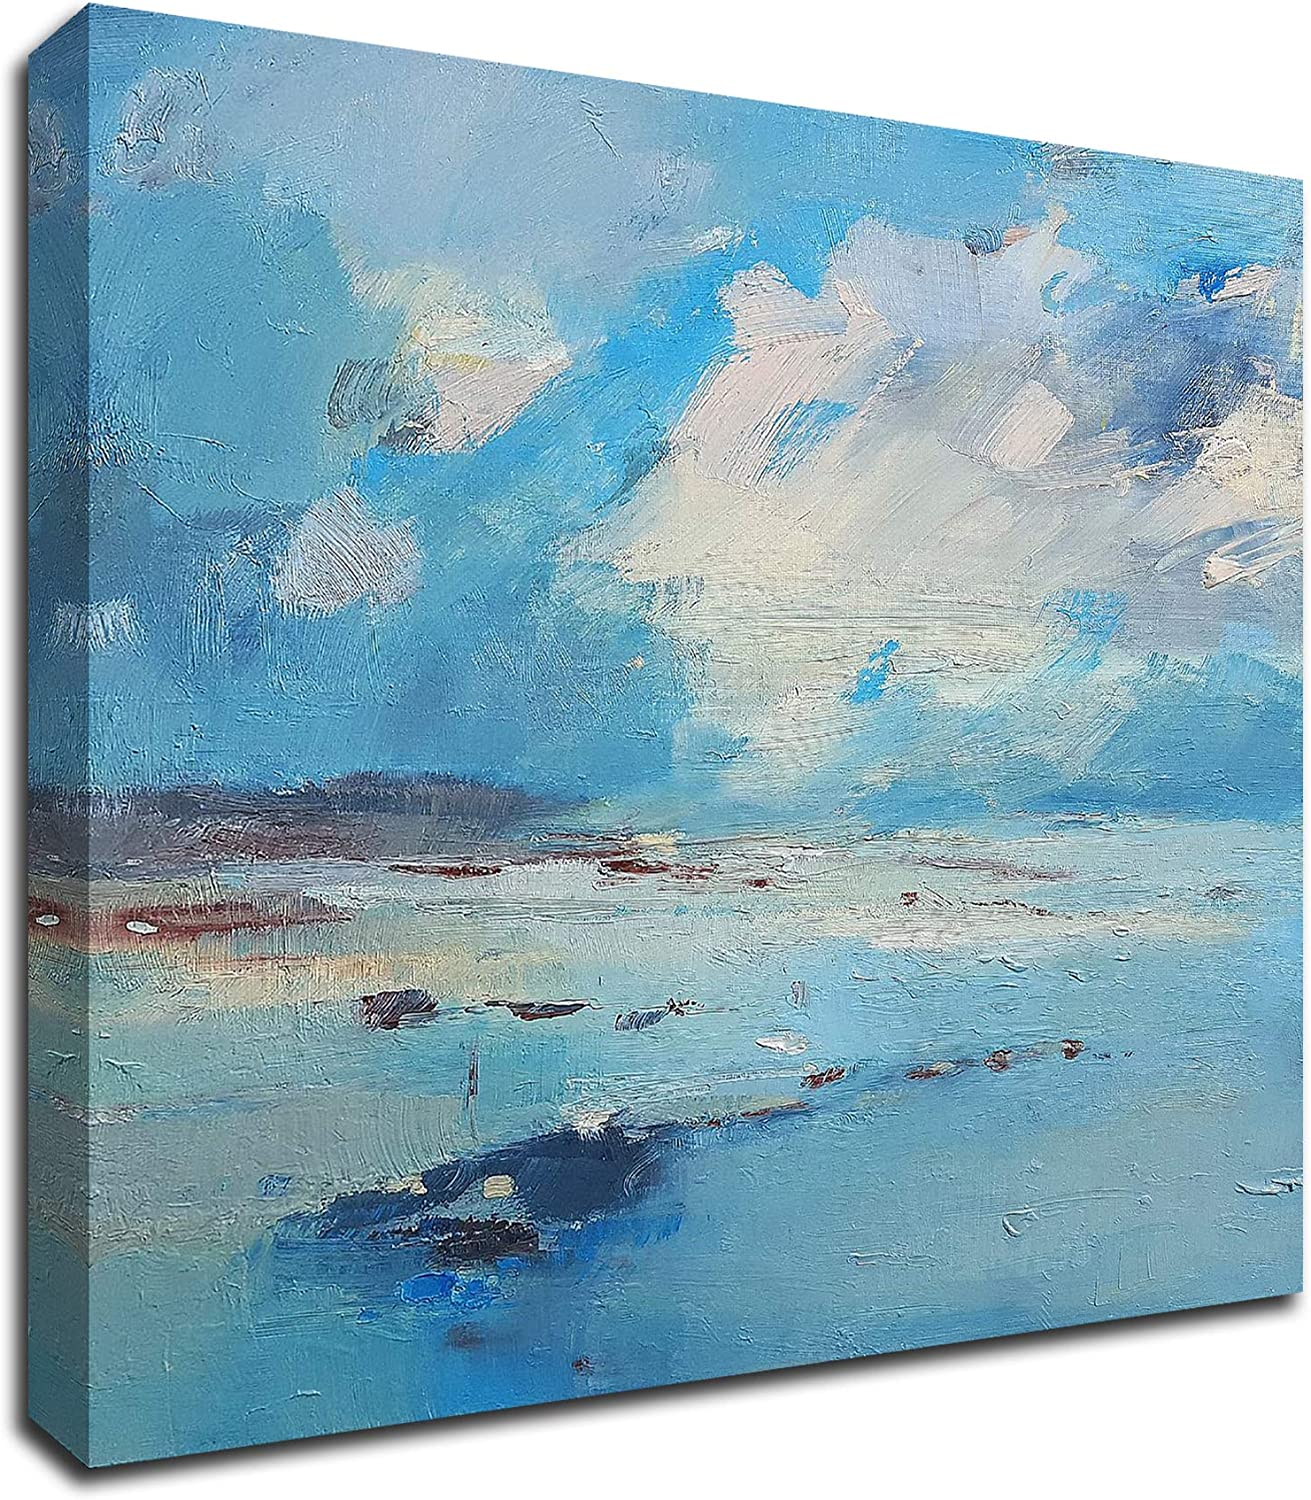 Max 45% OFF Tangletown Fine Art Low Tide by Print on shop Kinmont Andrew Canvas